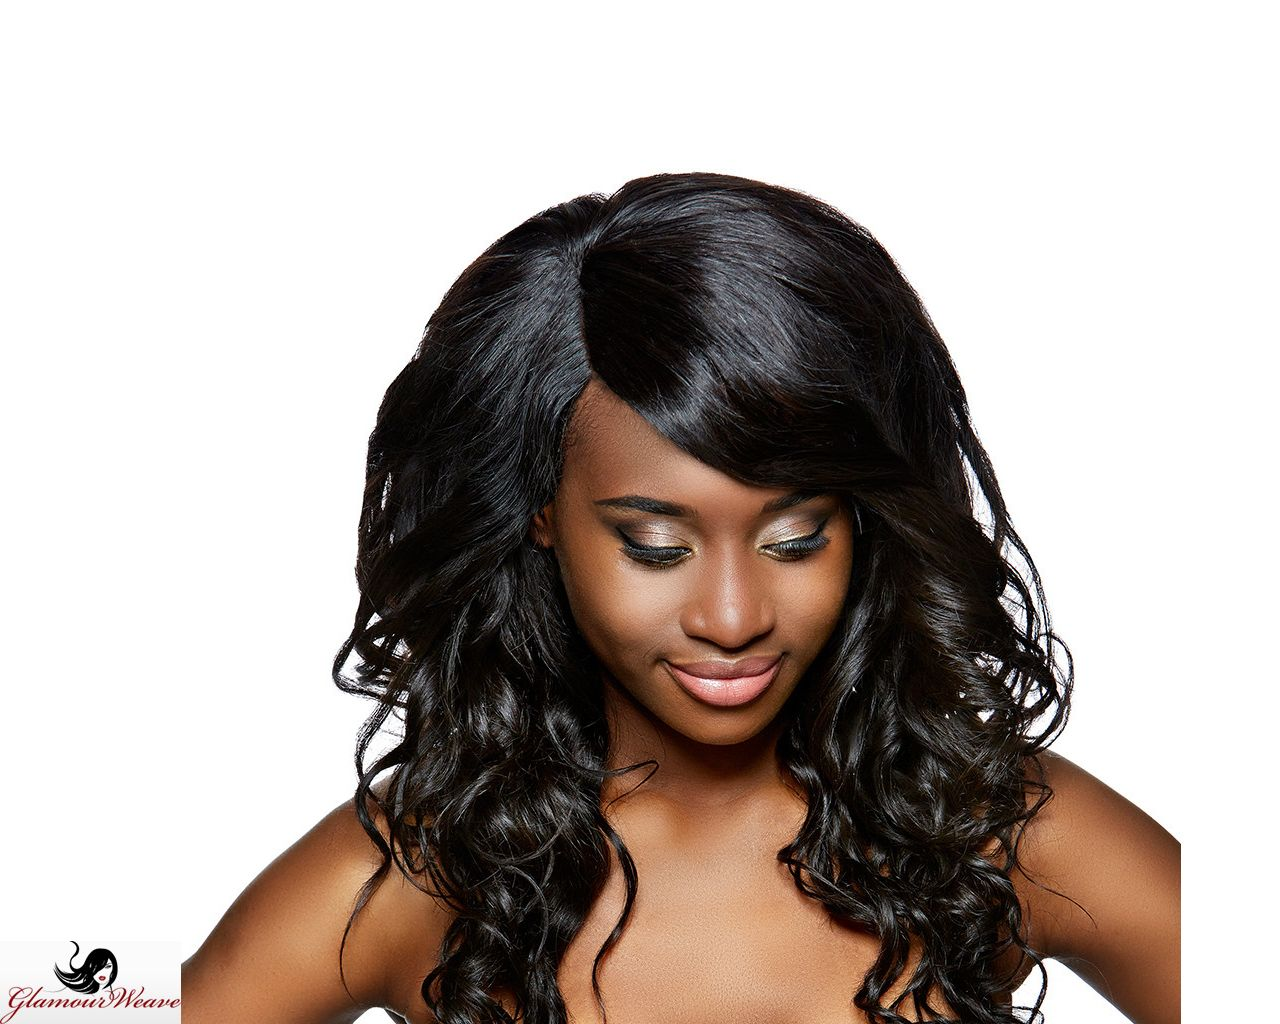 Buy Online, Get Free Next Day P&P. Hair extensions uk